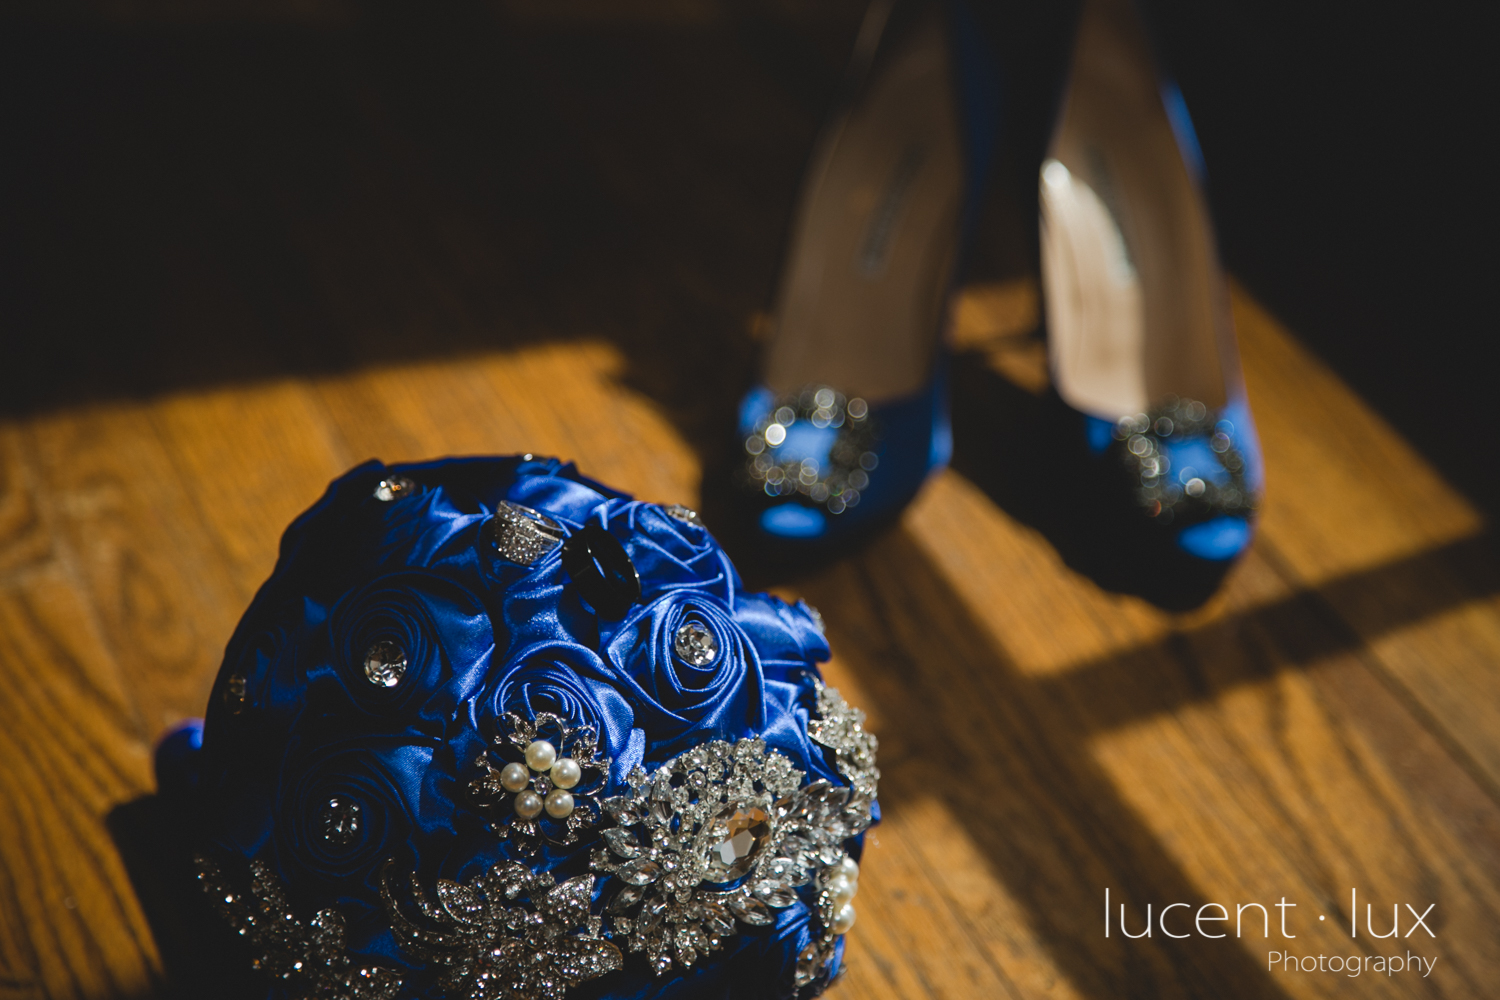 Harford_County_Courthouse_Bel_Air_Maryland_Wedding_Photographer_Maryland_Wedding_Photography-100.jpg